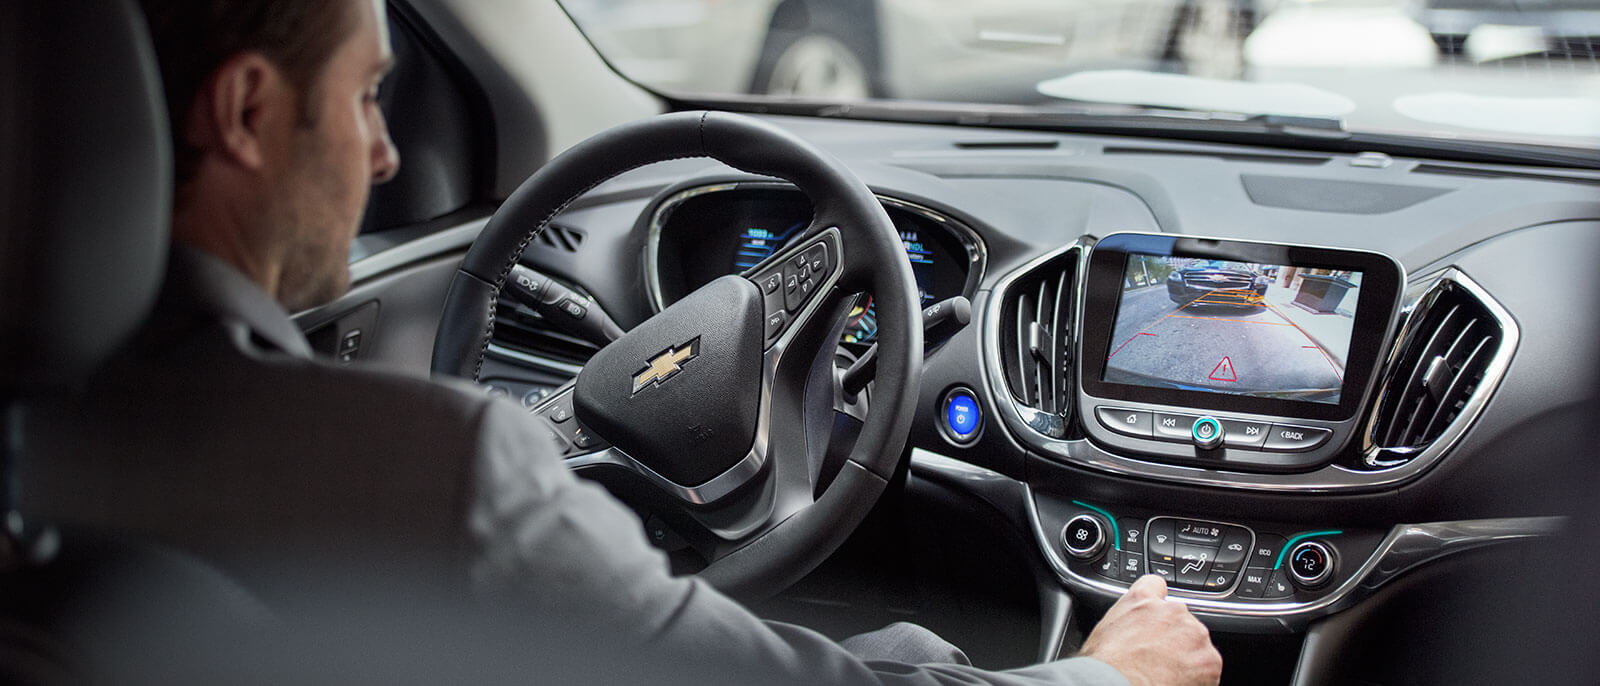 gm total volt chevrolet billion of racked miles us electric delivers chevy fleet up the in on